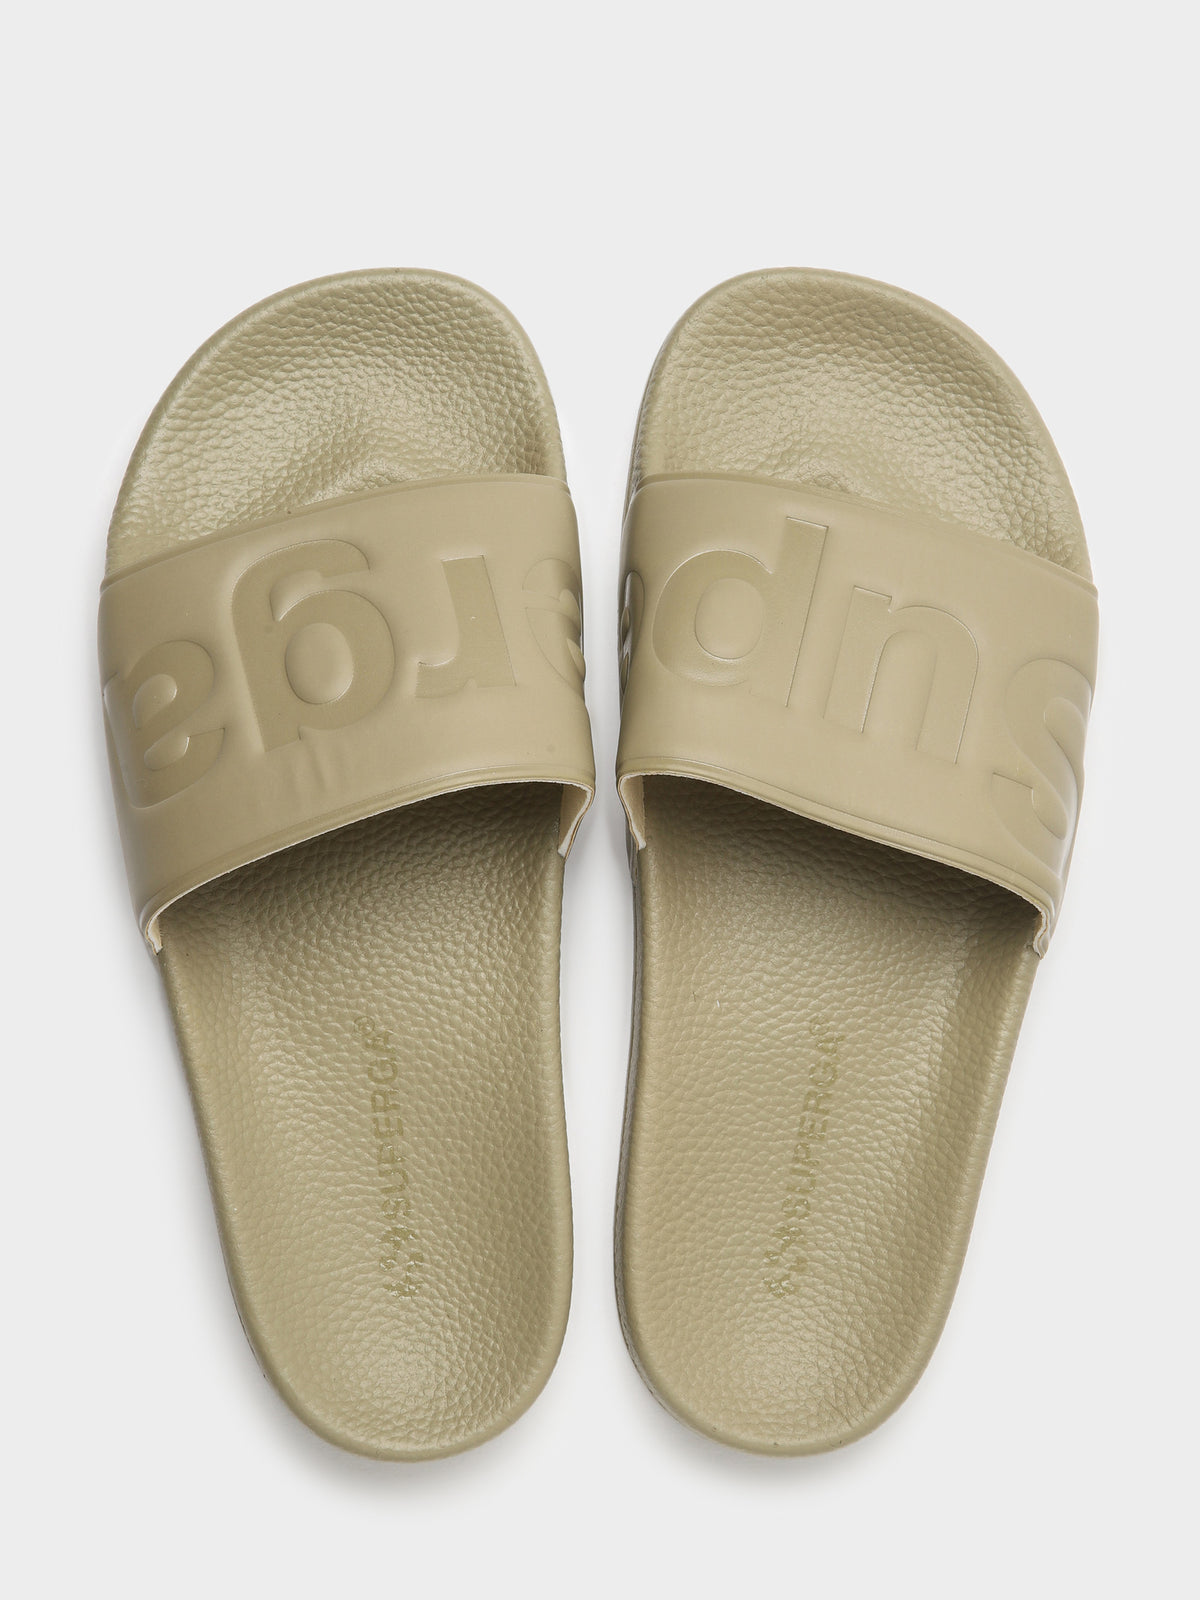 Unisex 1908 Logo Rubber Slides in Taupe